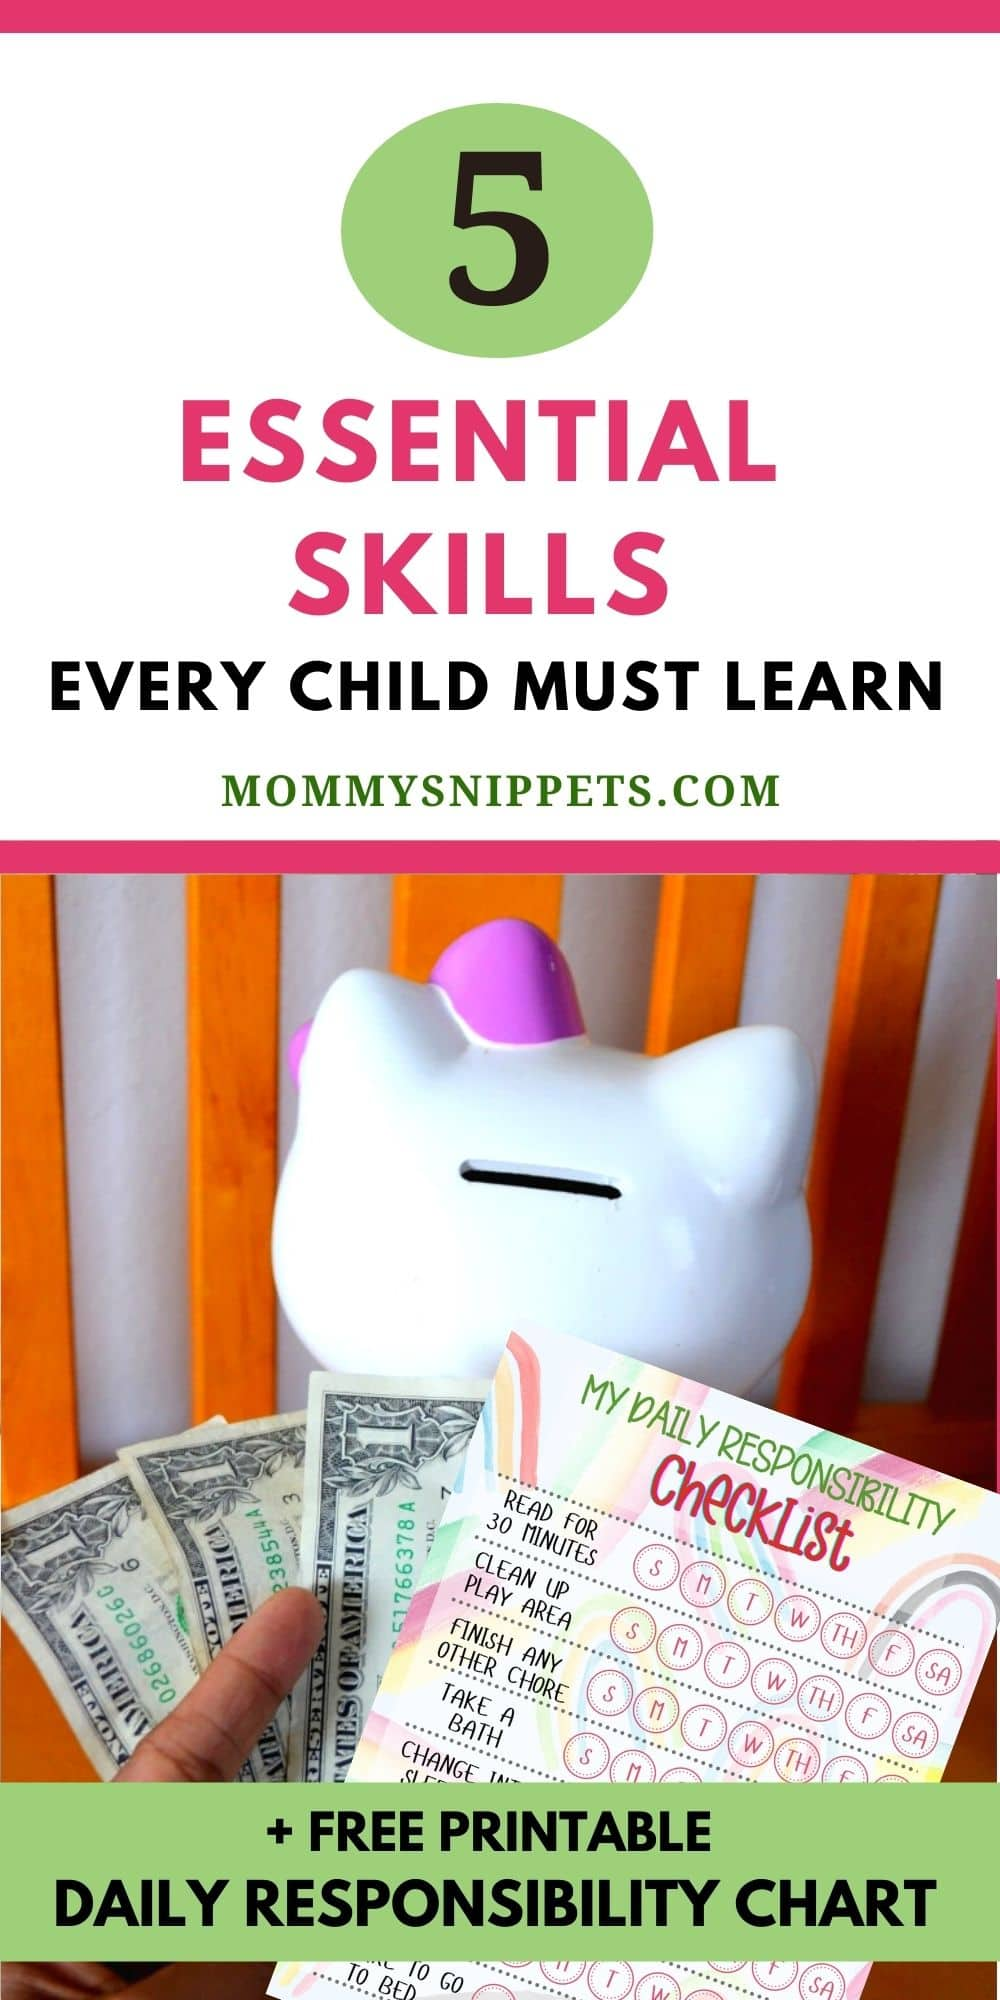 Top 5 Essential Skills Every Child Must Learn At Home (+ Free Printable Daily Responsibility Chart)